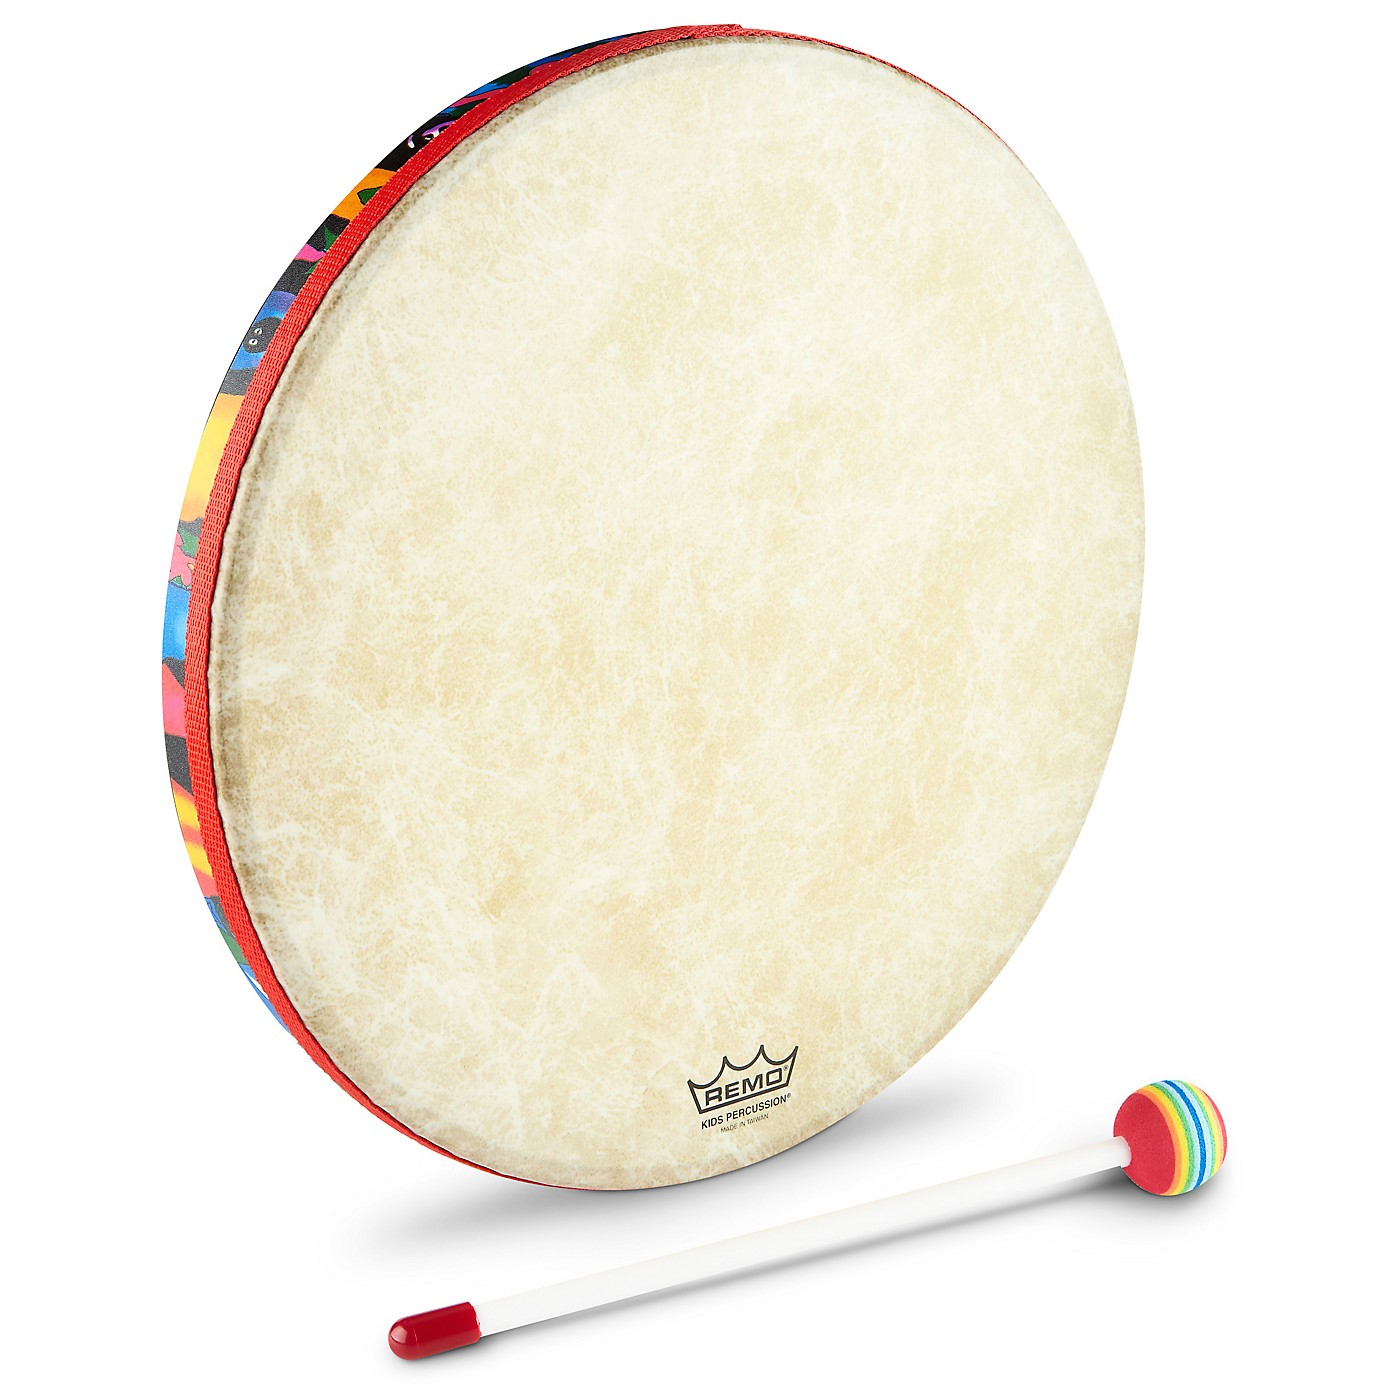 Remo Kids Percussion Hand Drums - Rainforest thumbnail